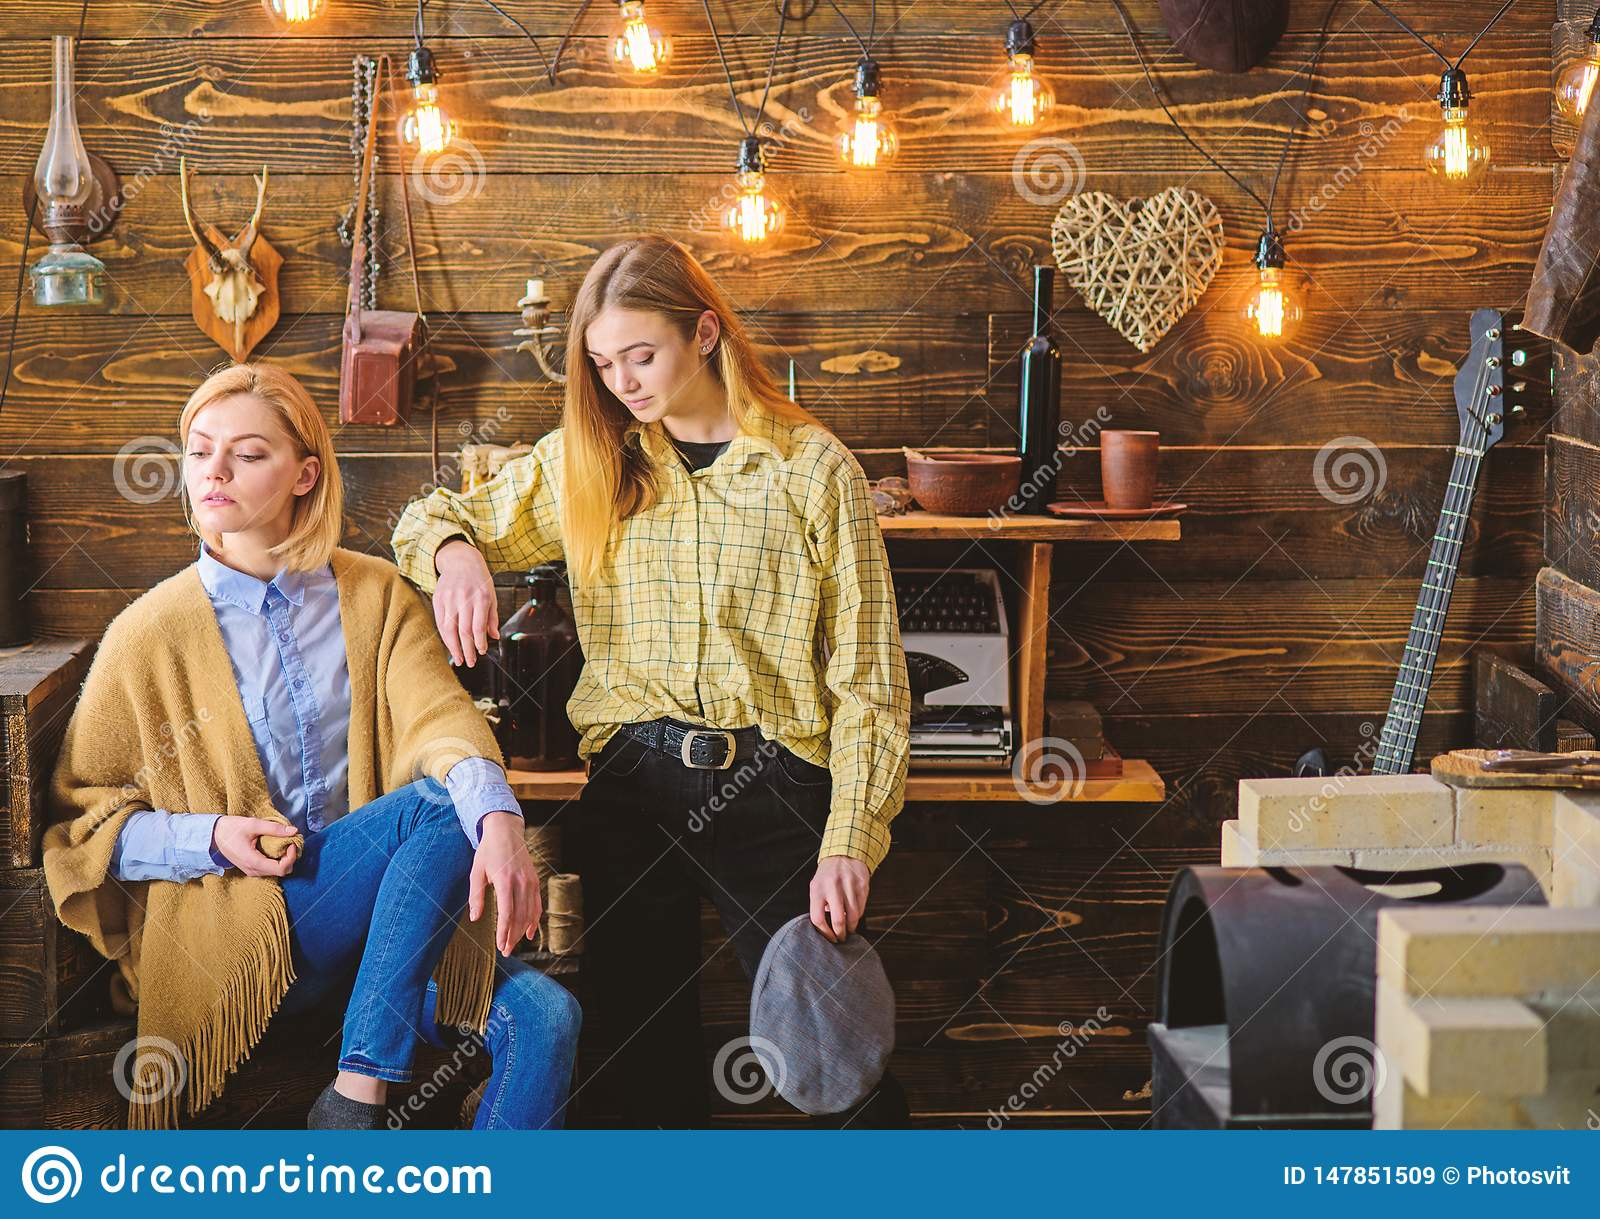 Friends or sisters spend pleasant evening in gamekeepers house, interior background. Vacation in woods concept. Girls on